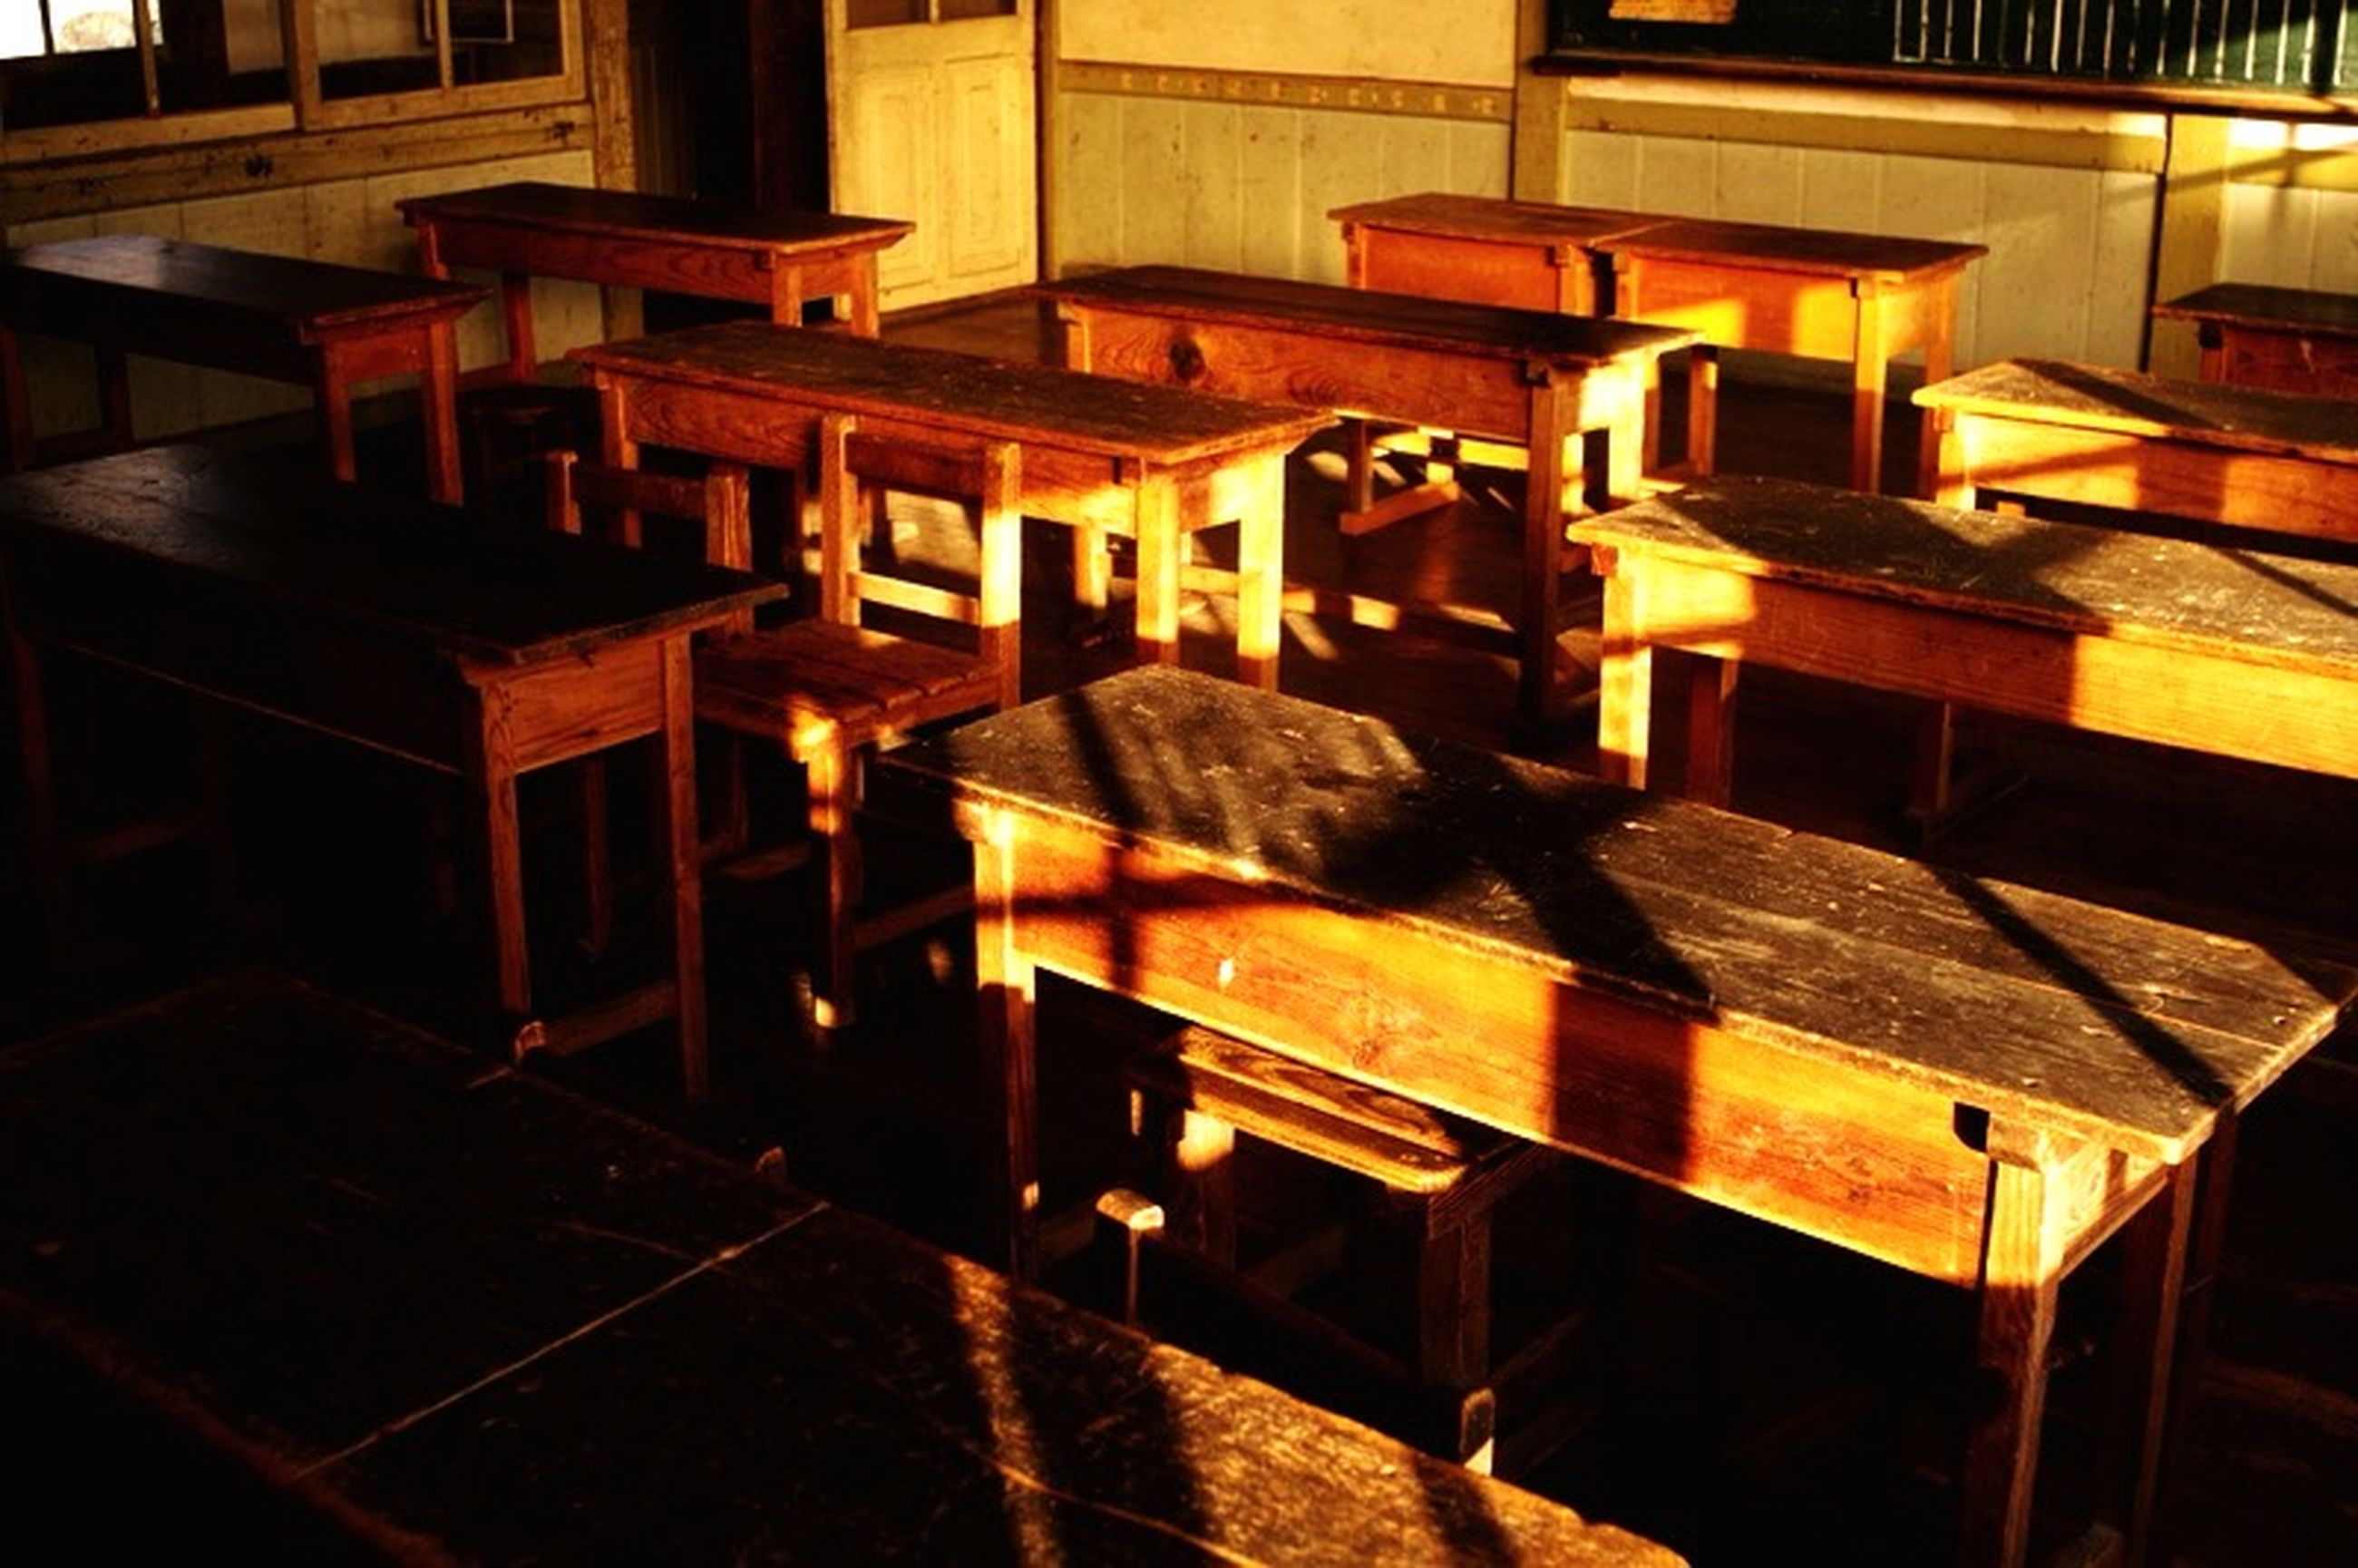 indoors, chair, table, absence, empty, illuminated, in a row, furniture, arrangement, large group of objects, restaurant, seat, no people, night, wood - material, shelf, stack, order, high angle view, still life